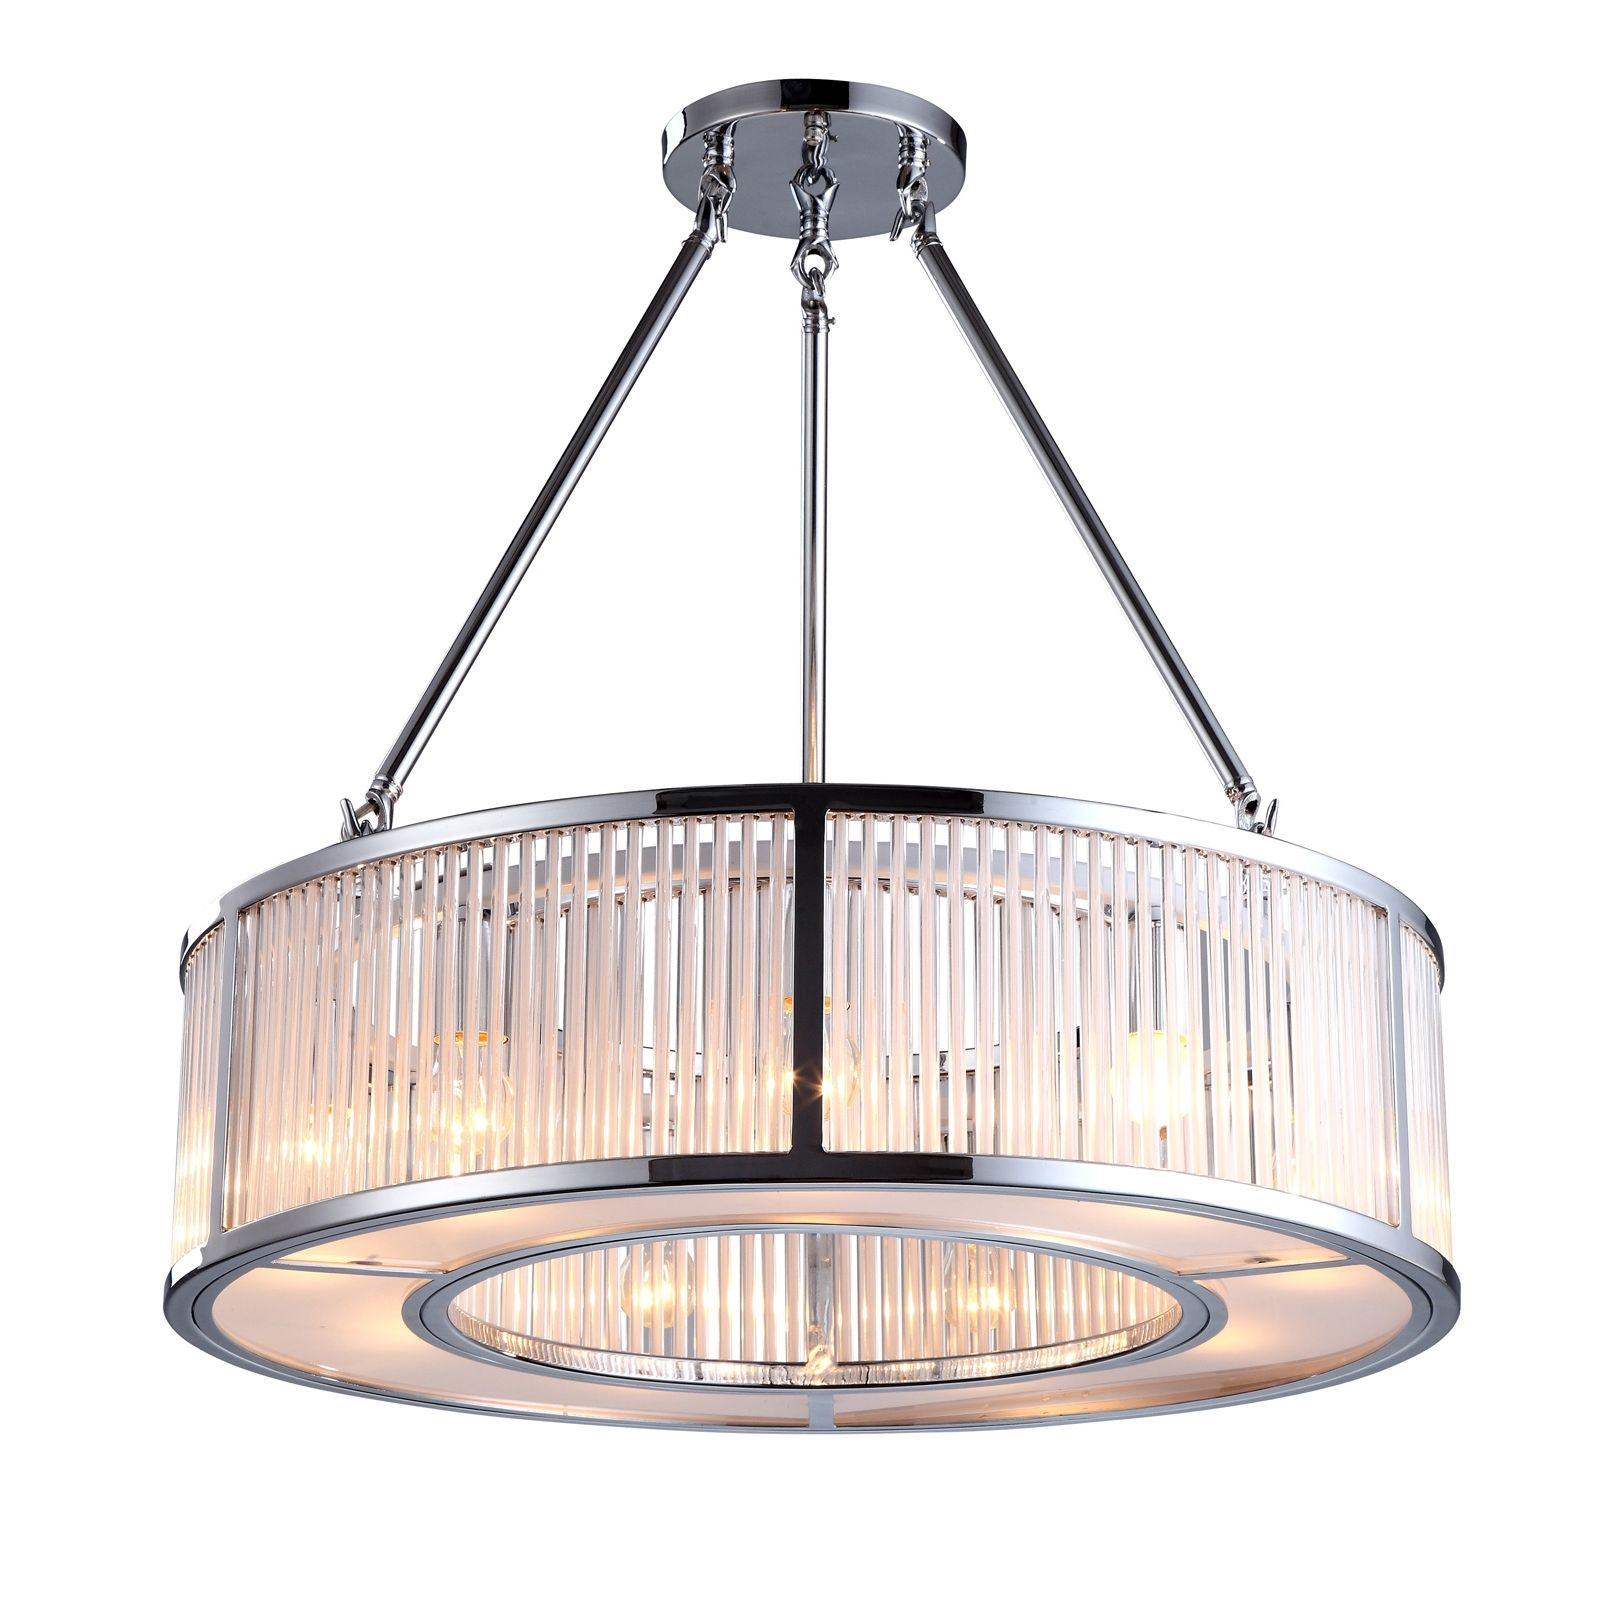 Aston ceiling light chandeliers ceiling lights lighting buy rv astley aston 9 light chandelier online with houseologys price promise full rv astley collection with uk international shipping arubaitofo Images